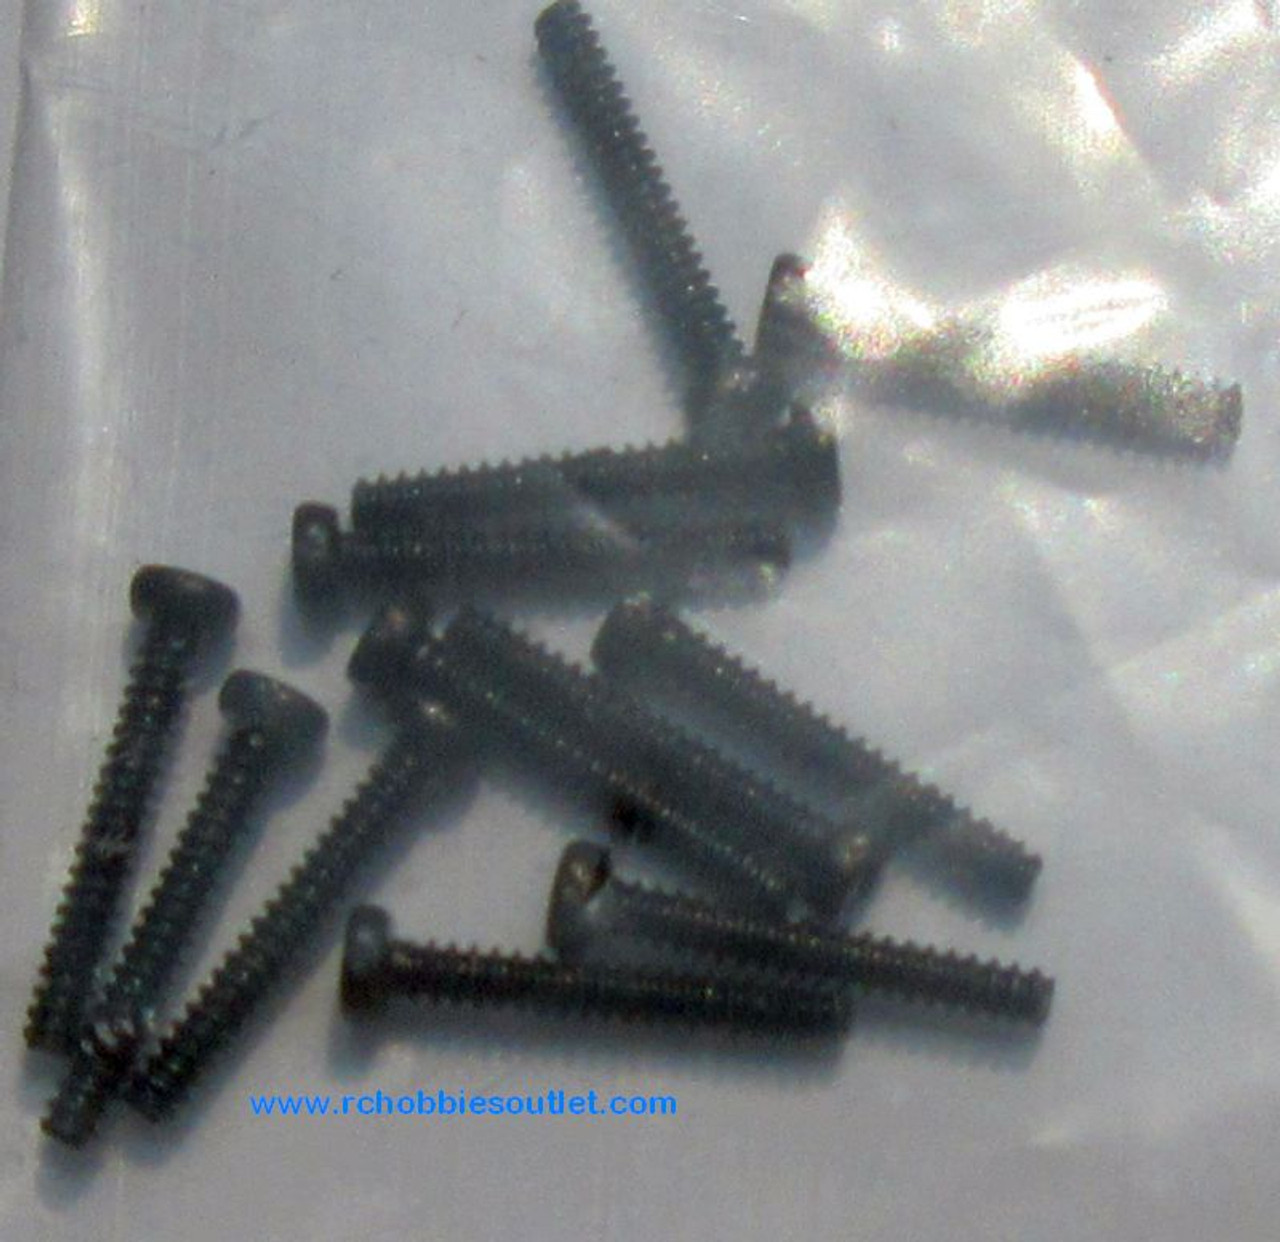 24641 Round Cross Head Self-Tapping Screw for  1/24 scale HSP and ECX RC Vehicles